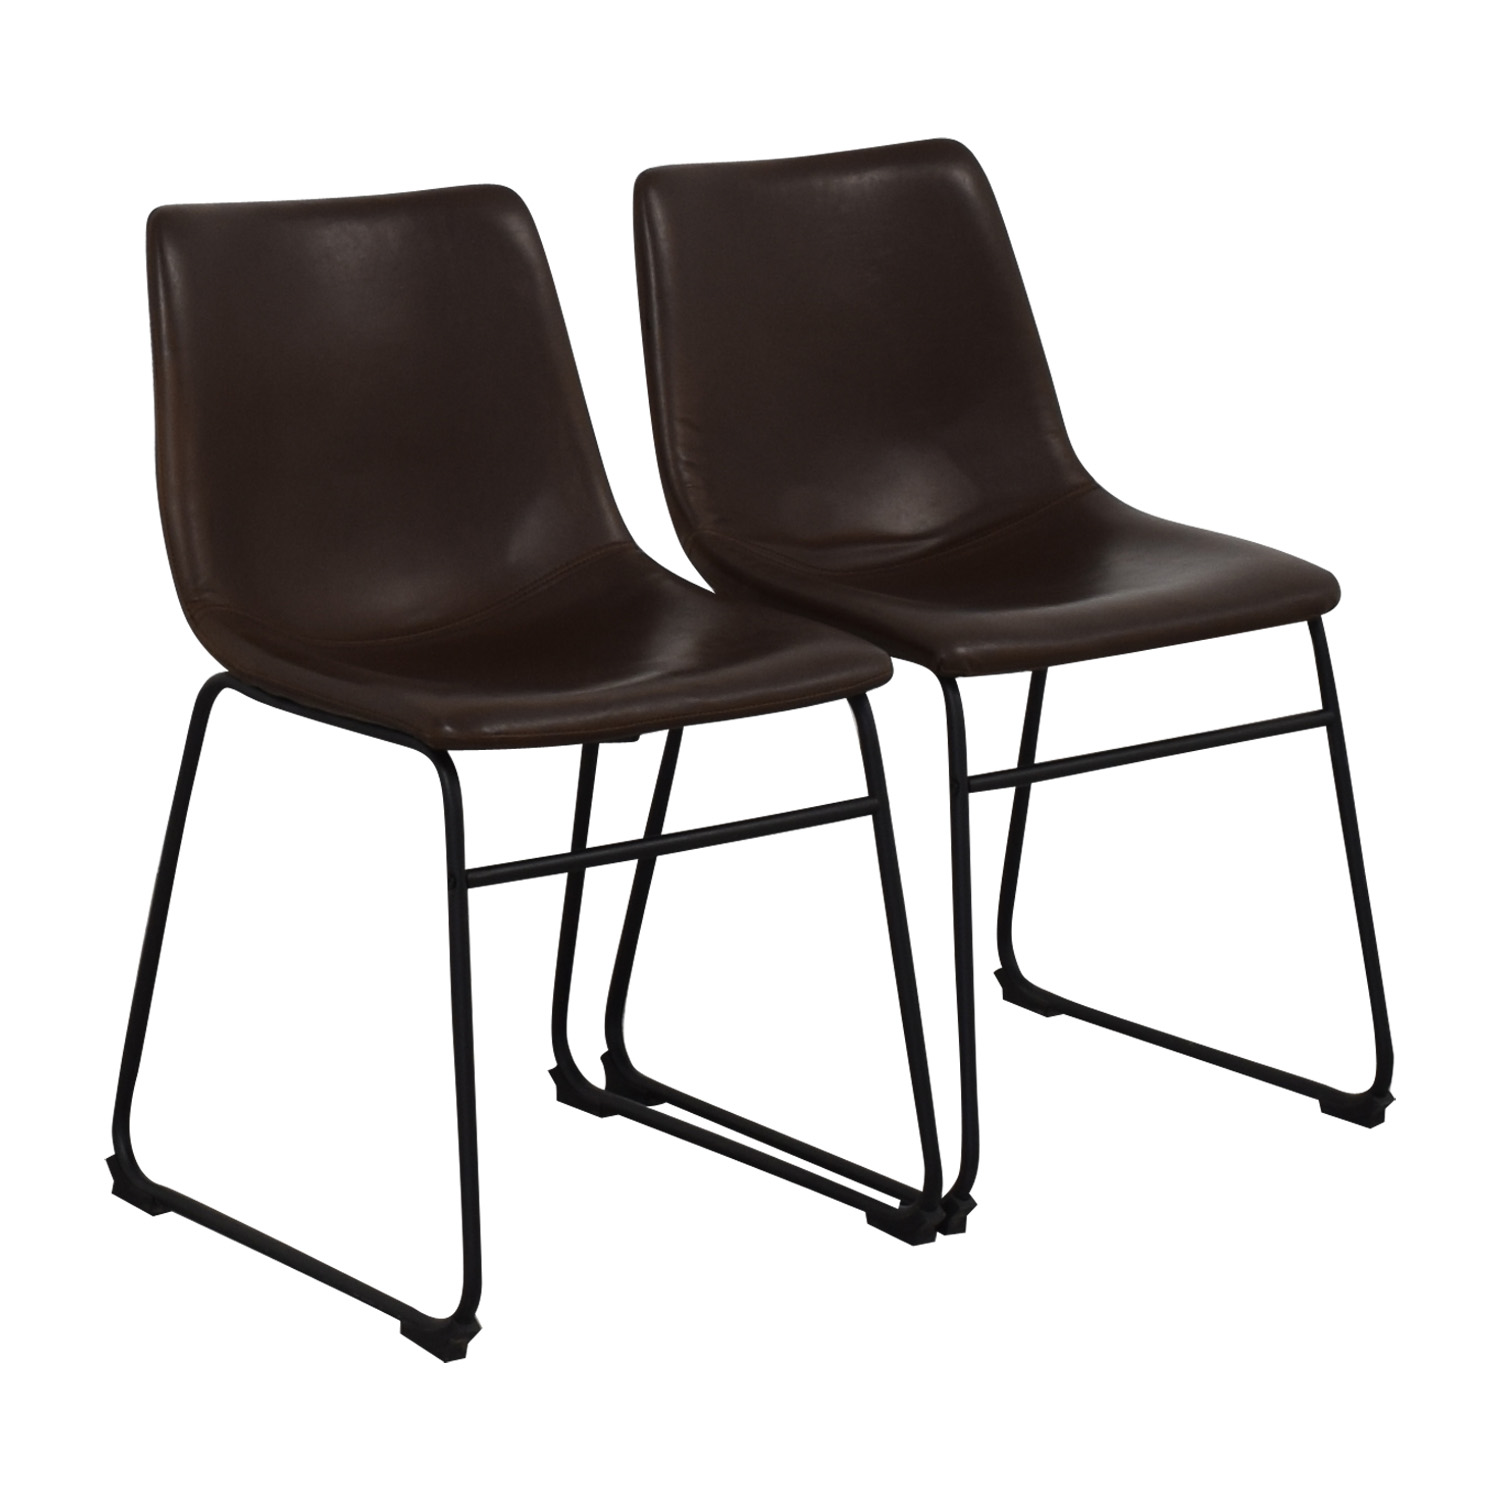 Walker Edison Industrial Faux Leather Dining Chairs / Chairs